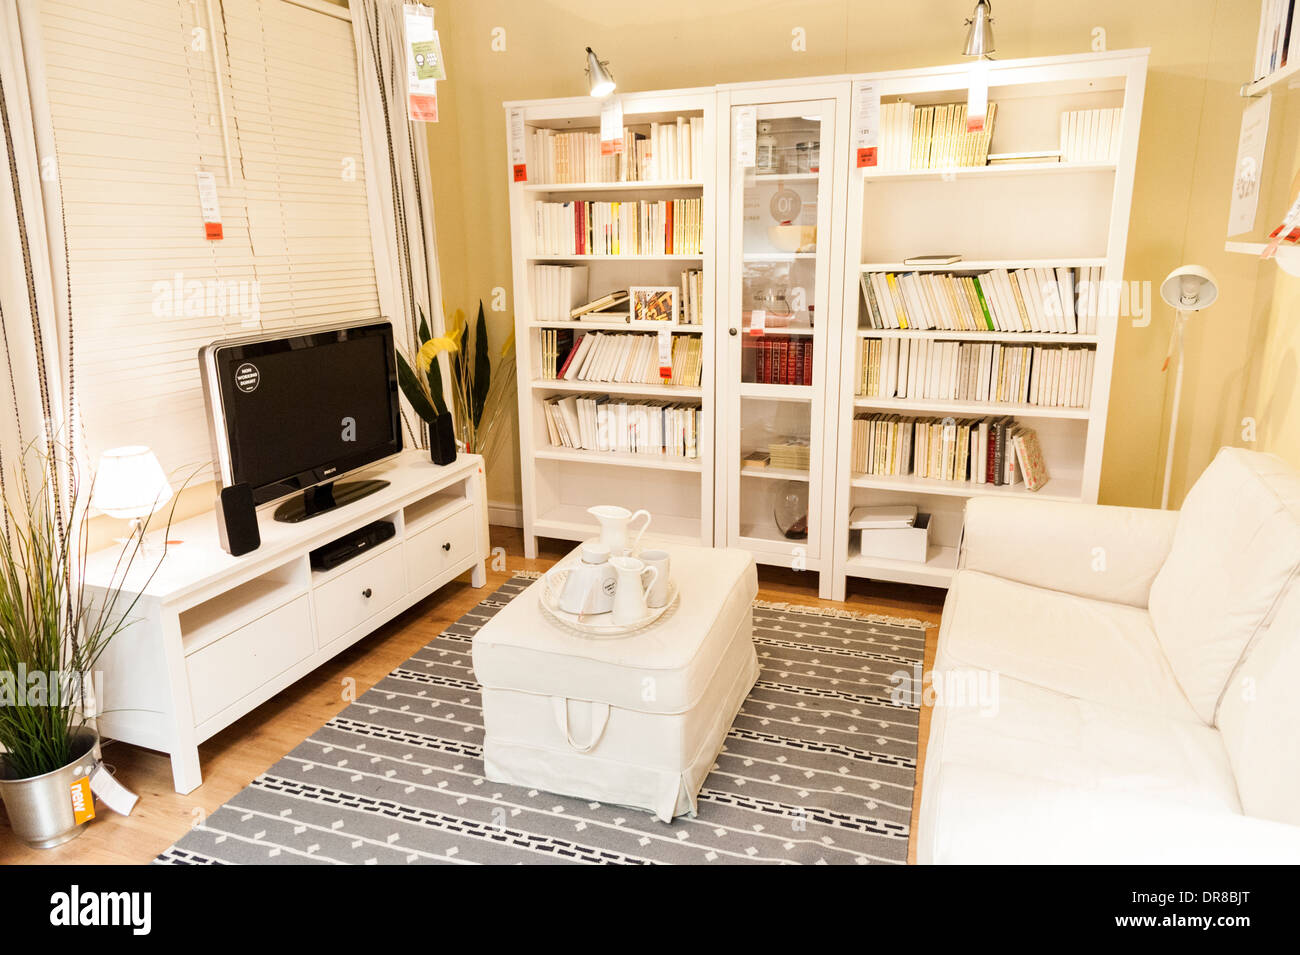 Living room furniture in Ikea, London, England, UK Stock Photo ...